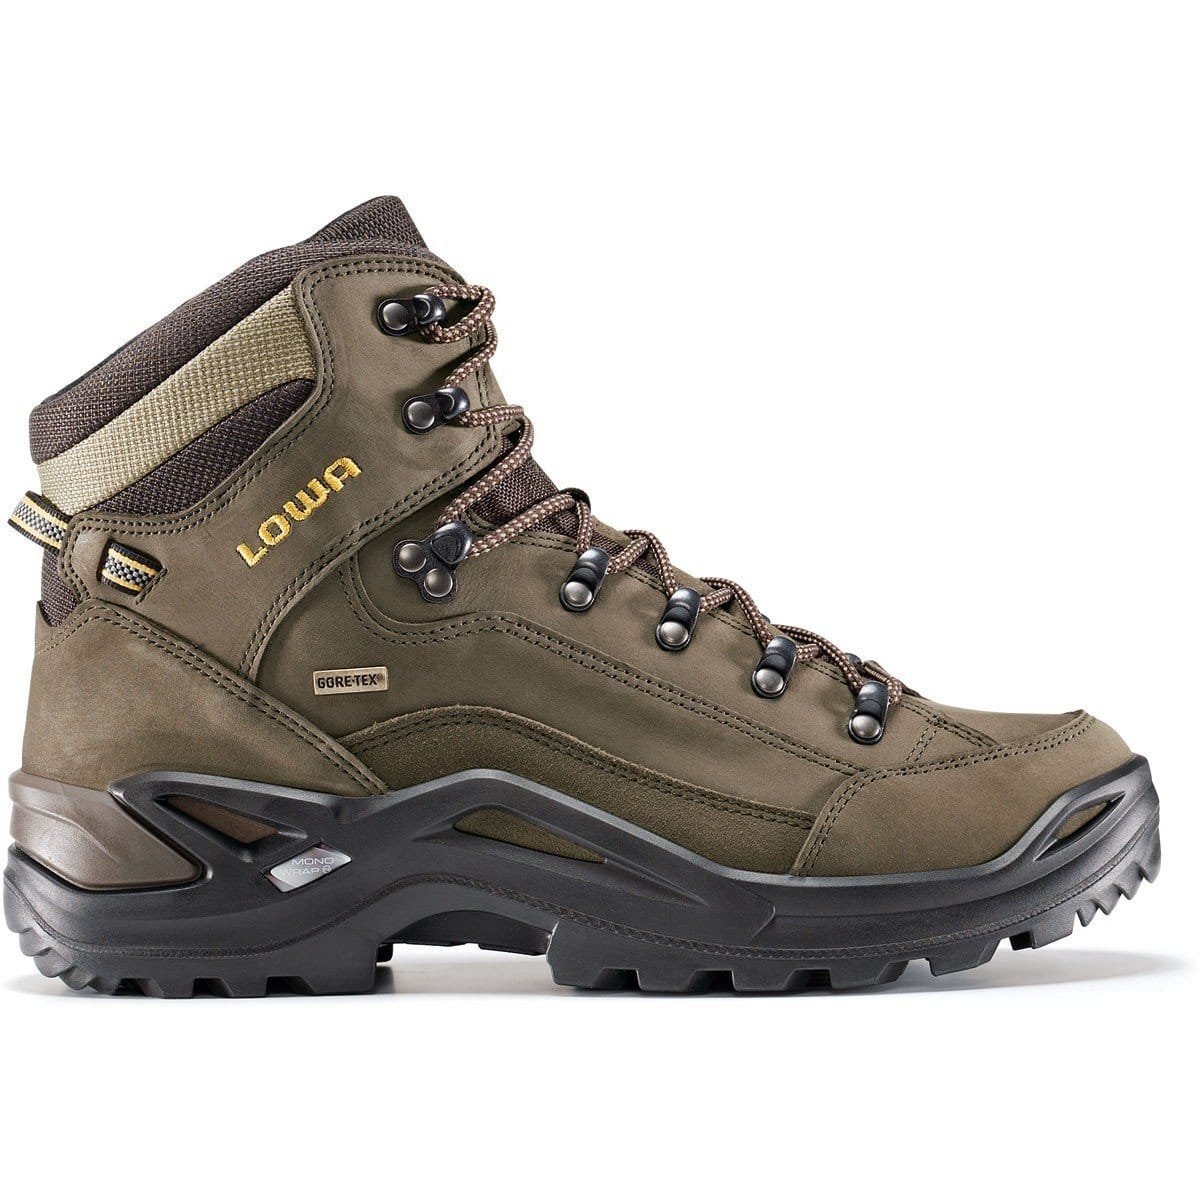 LOWA RENEGADE GTX MID HIKING BOOT - WOMENS - A good quality hiking boot for women from Paragon Sports #hiking #boots #affiliate